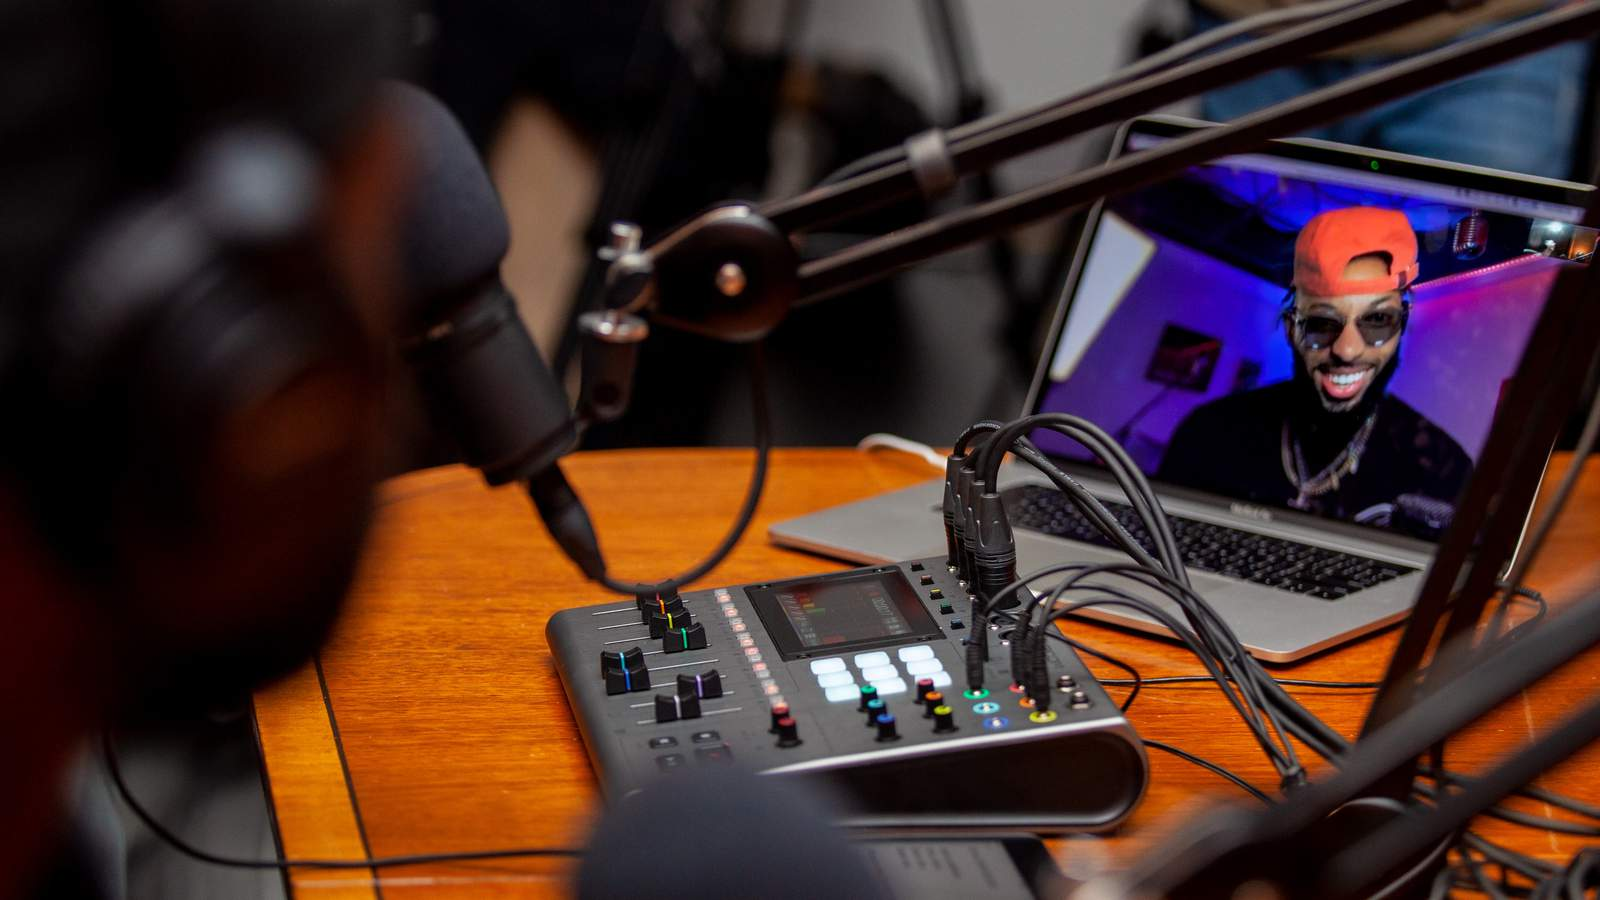 Podcasting with the P8